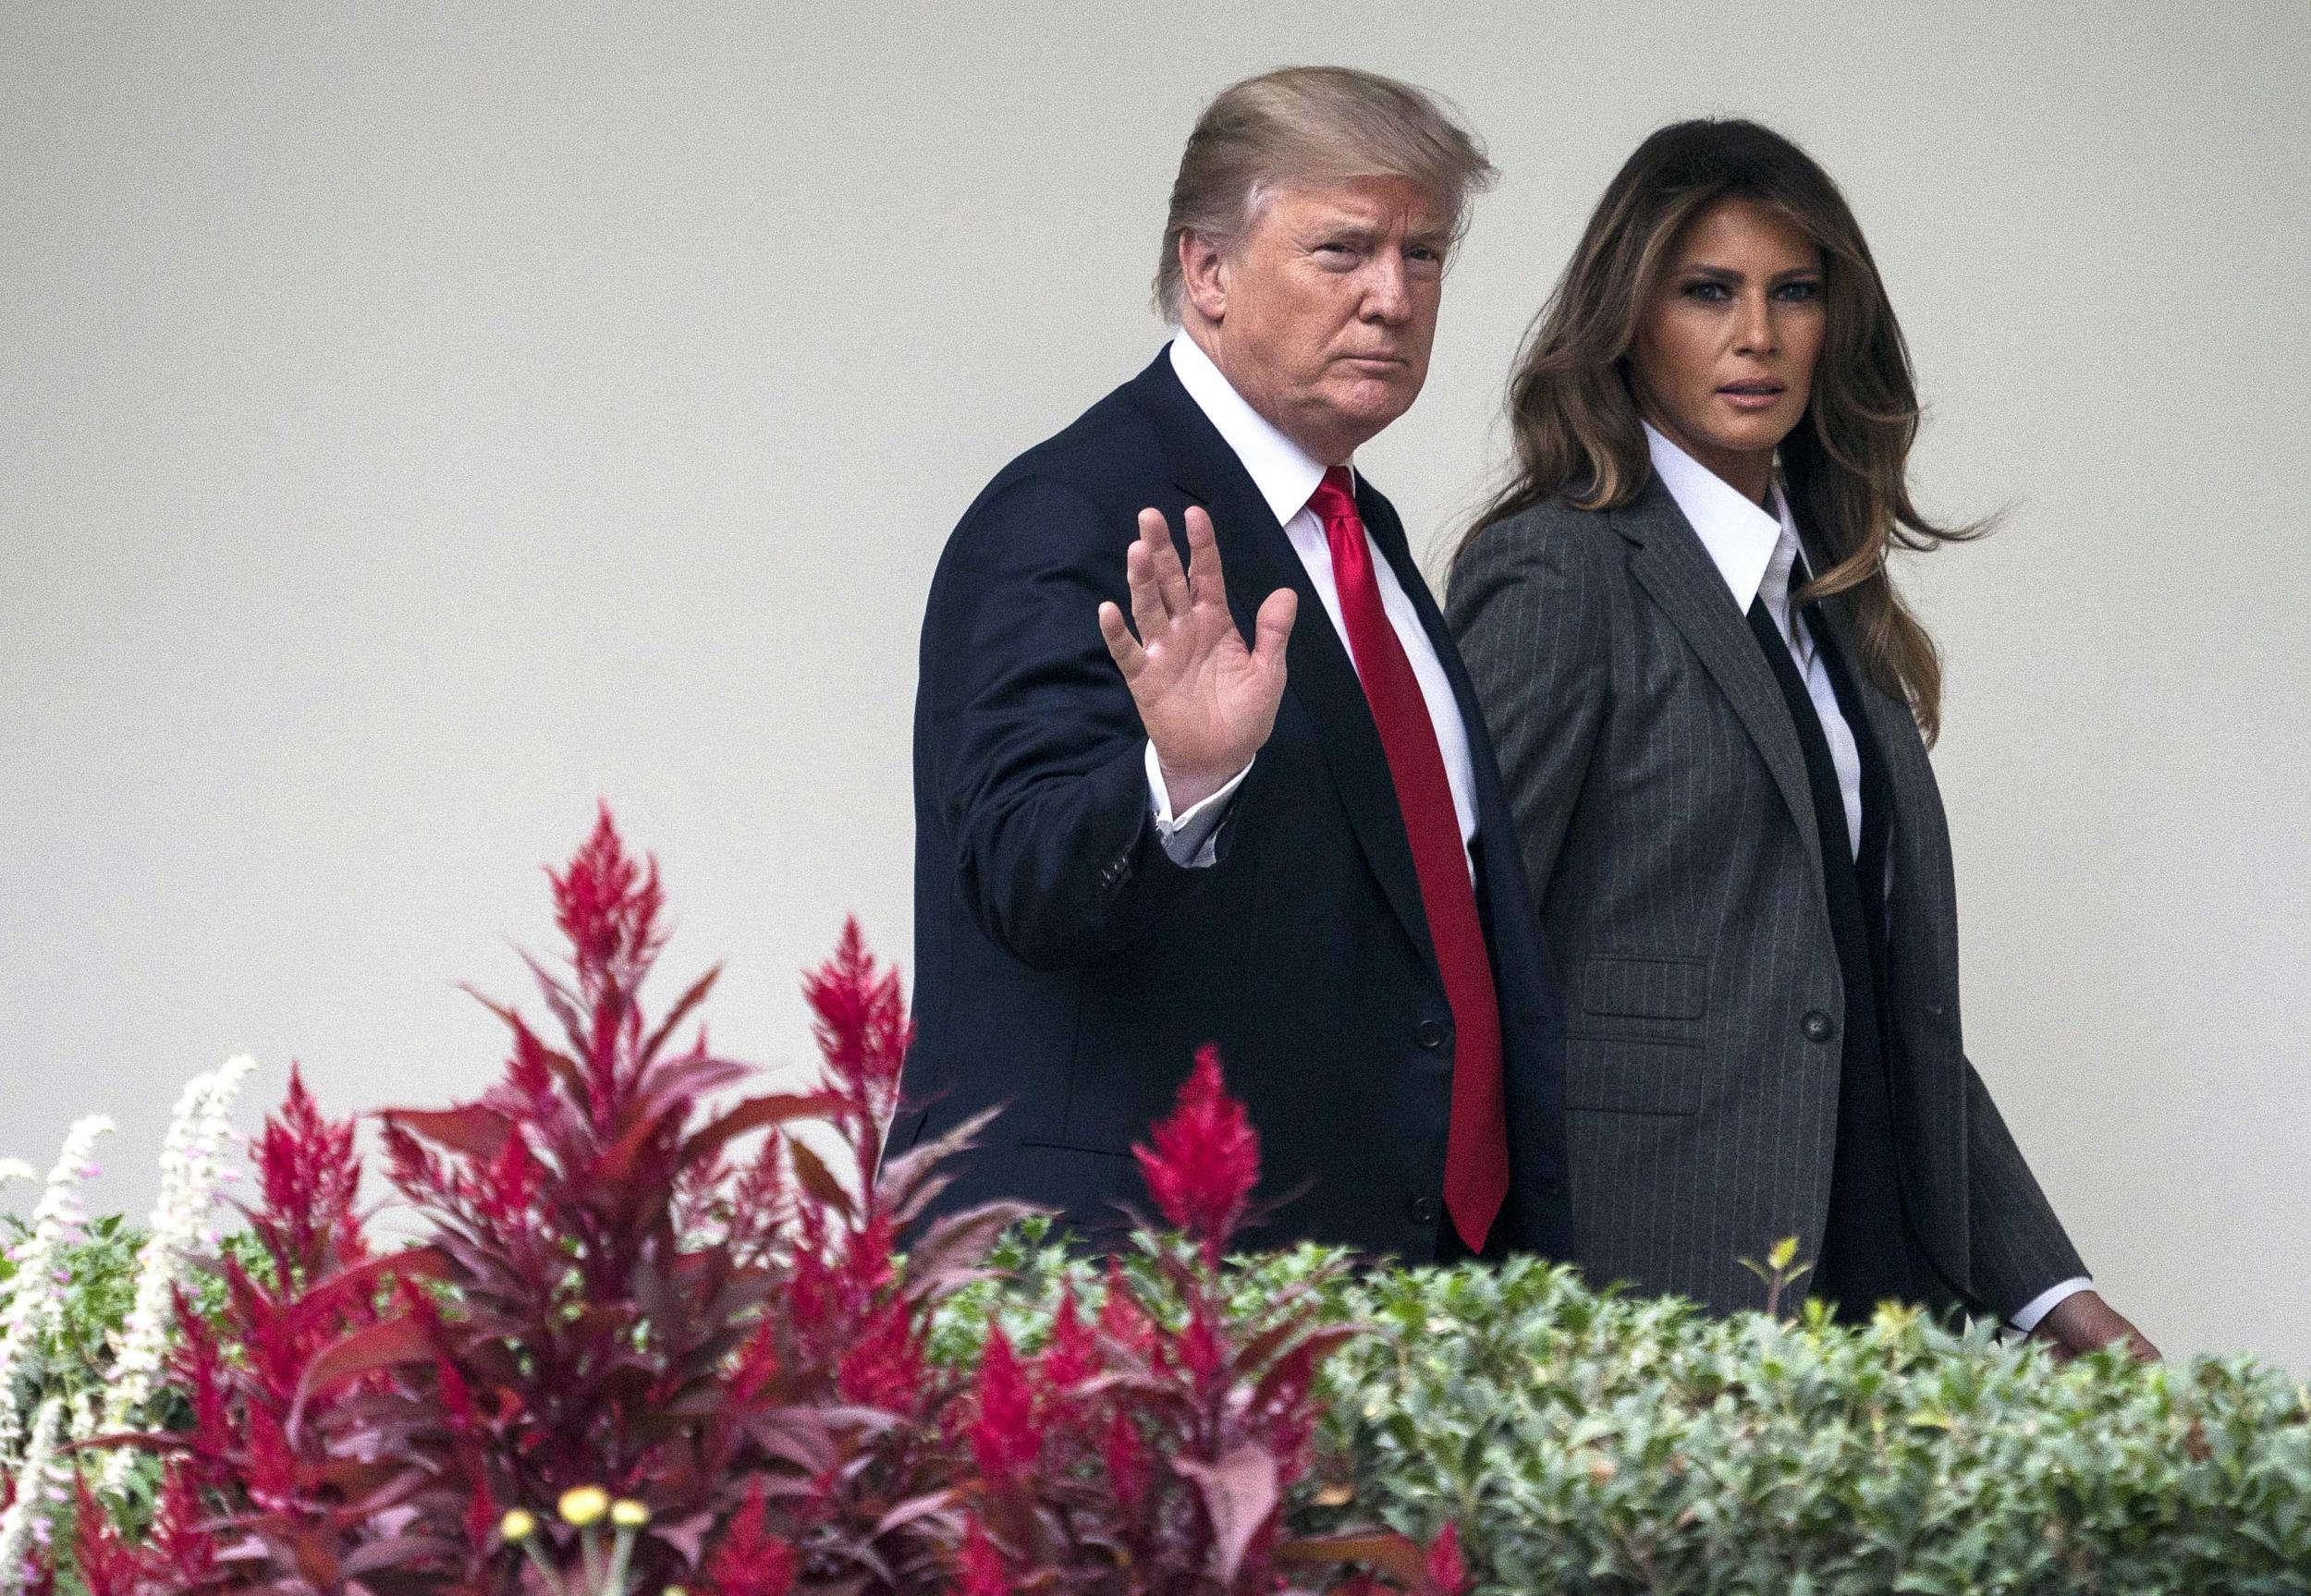 dfa86b17860 Melania Trump breaks silence over President s alleged  porn star affair   after staying home during Davos trip